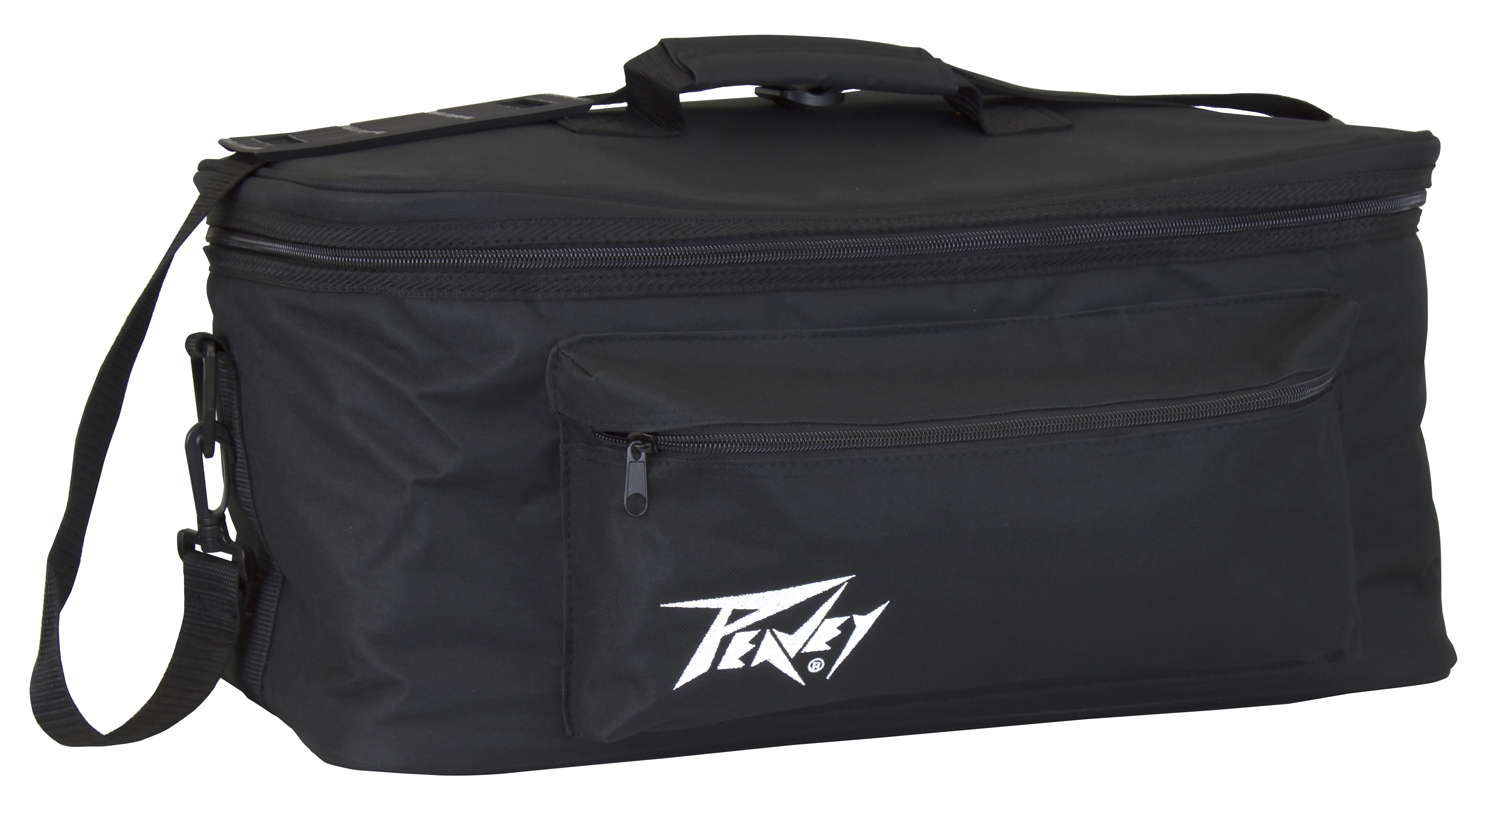 Peavey Carrying Bag Closed